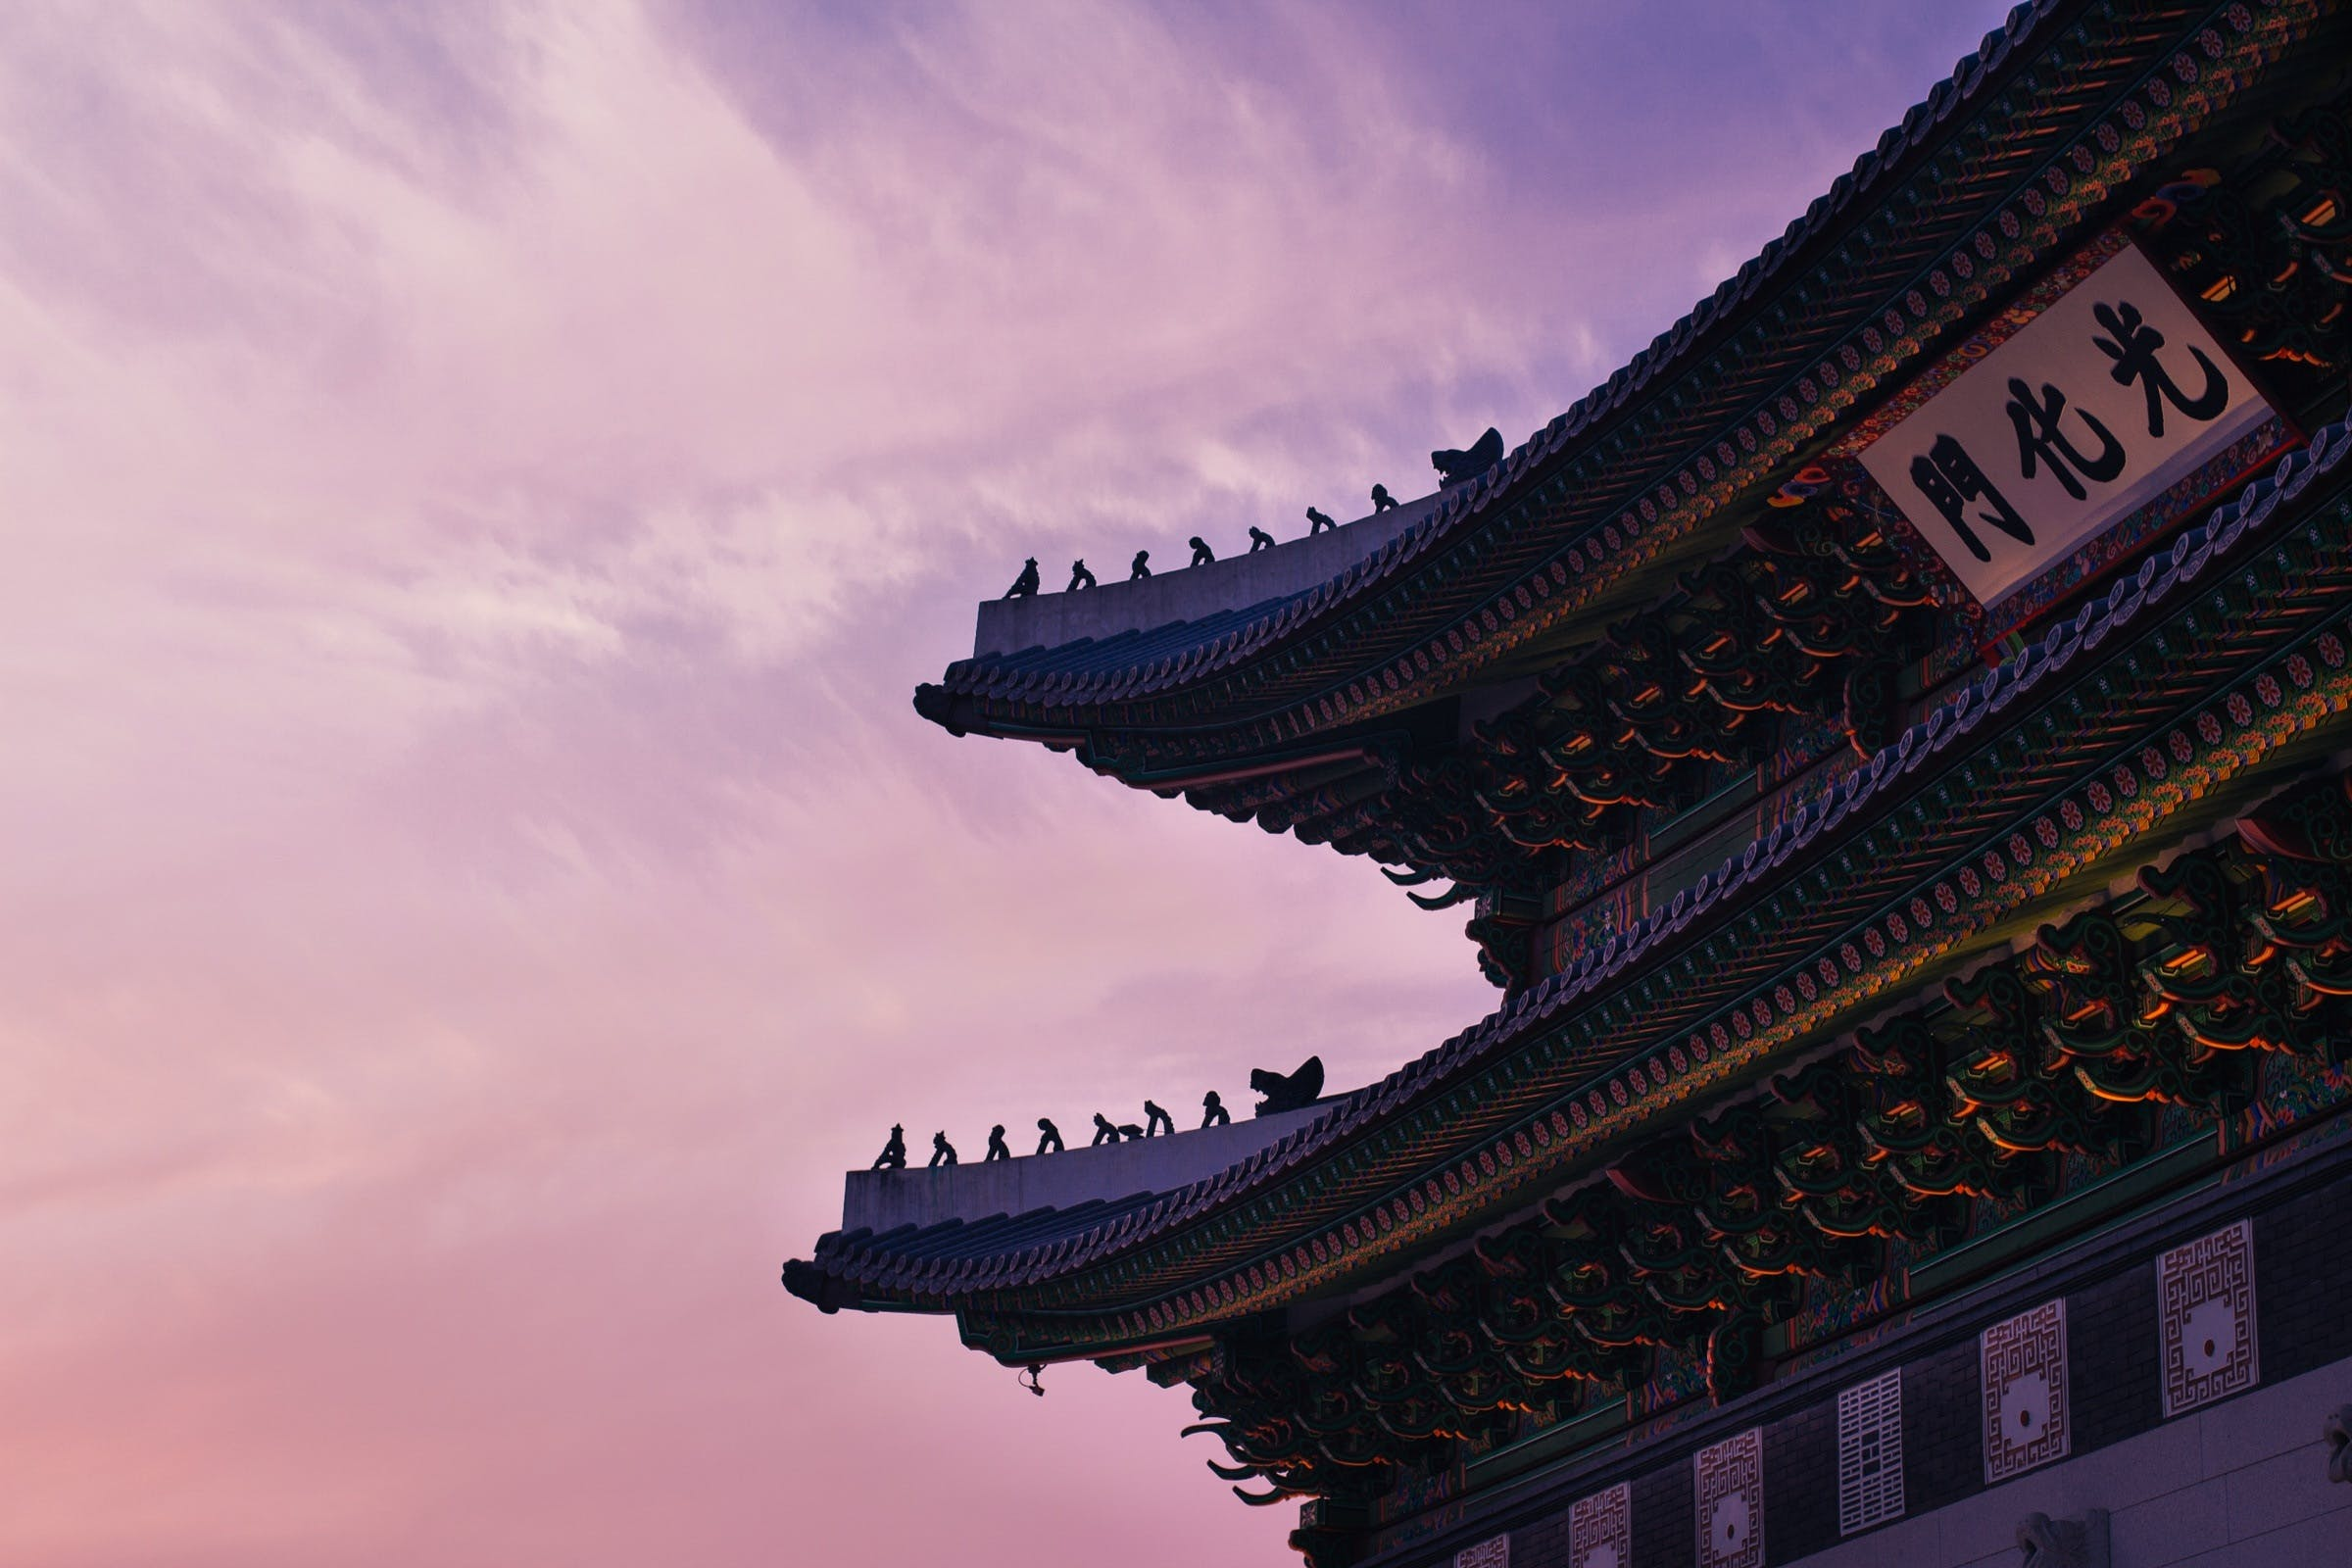 Chinese Temple With Kanji Banner on Top Under Orange and Purple Cloudy Sky